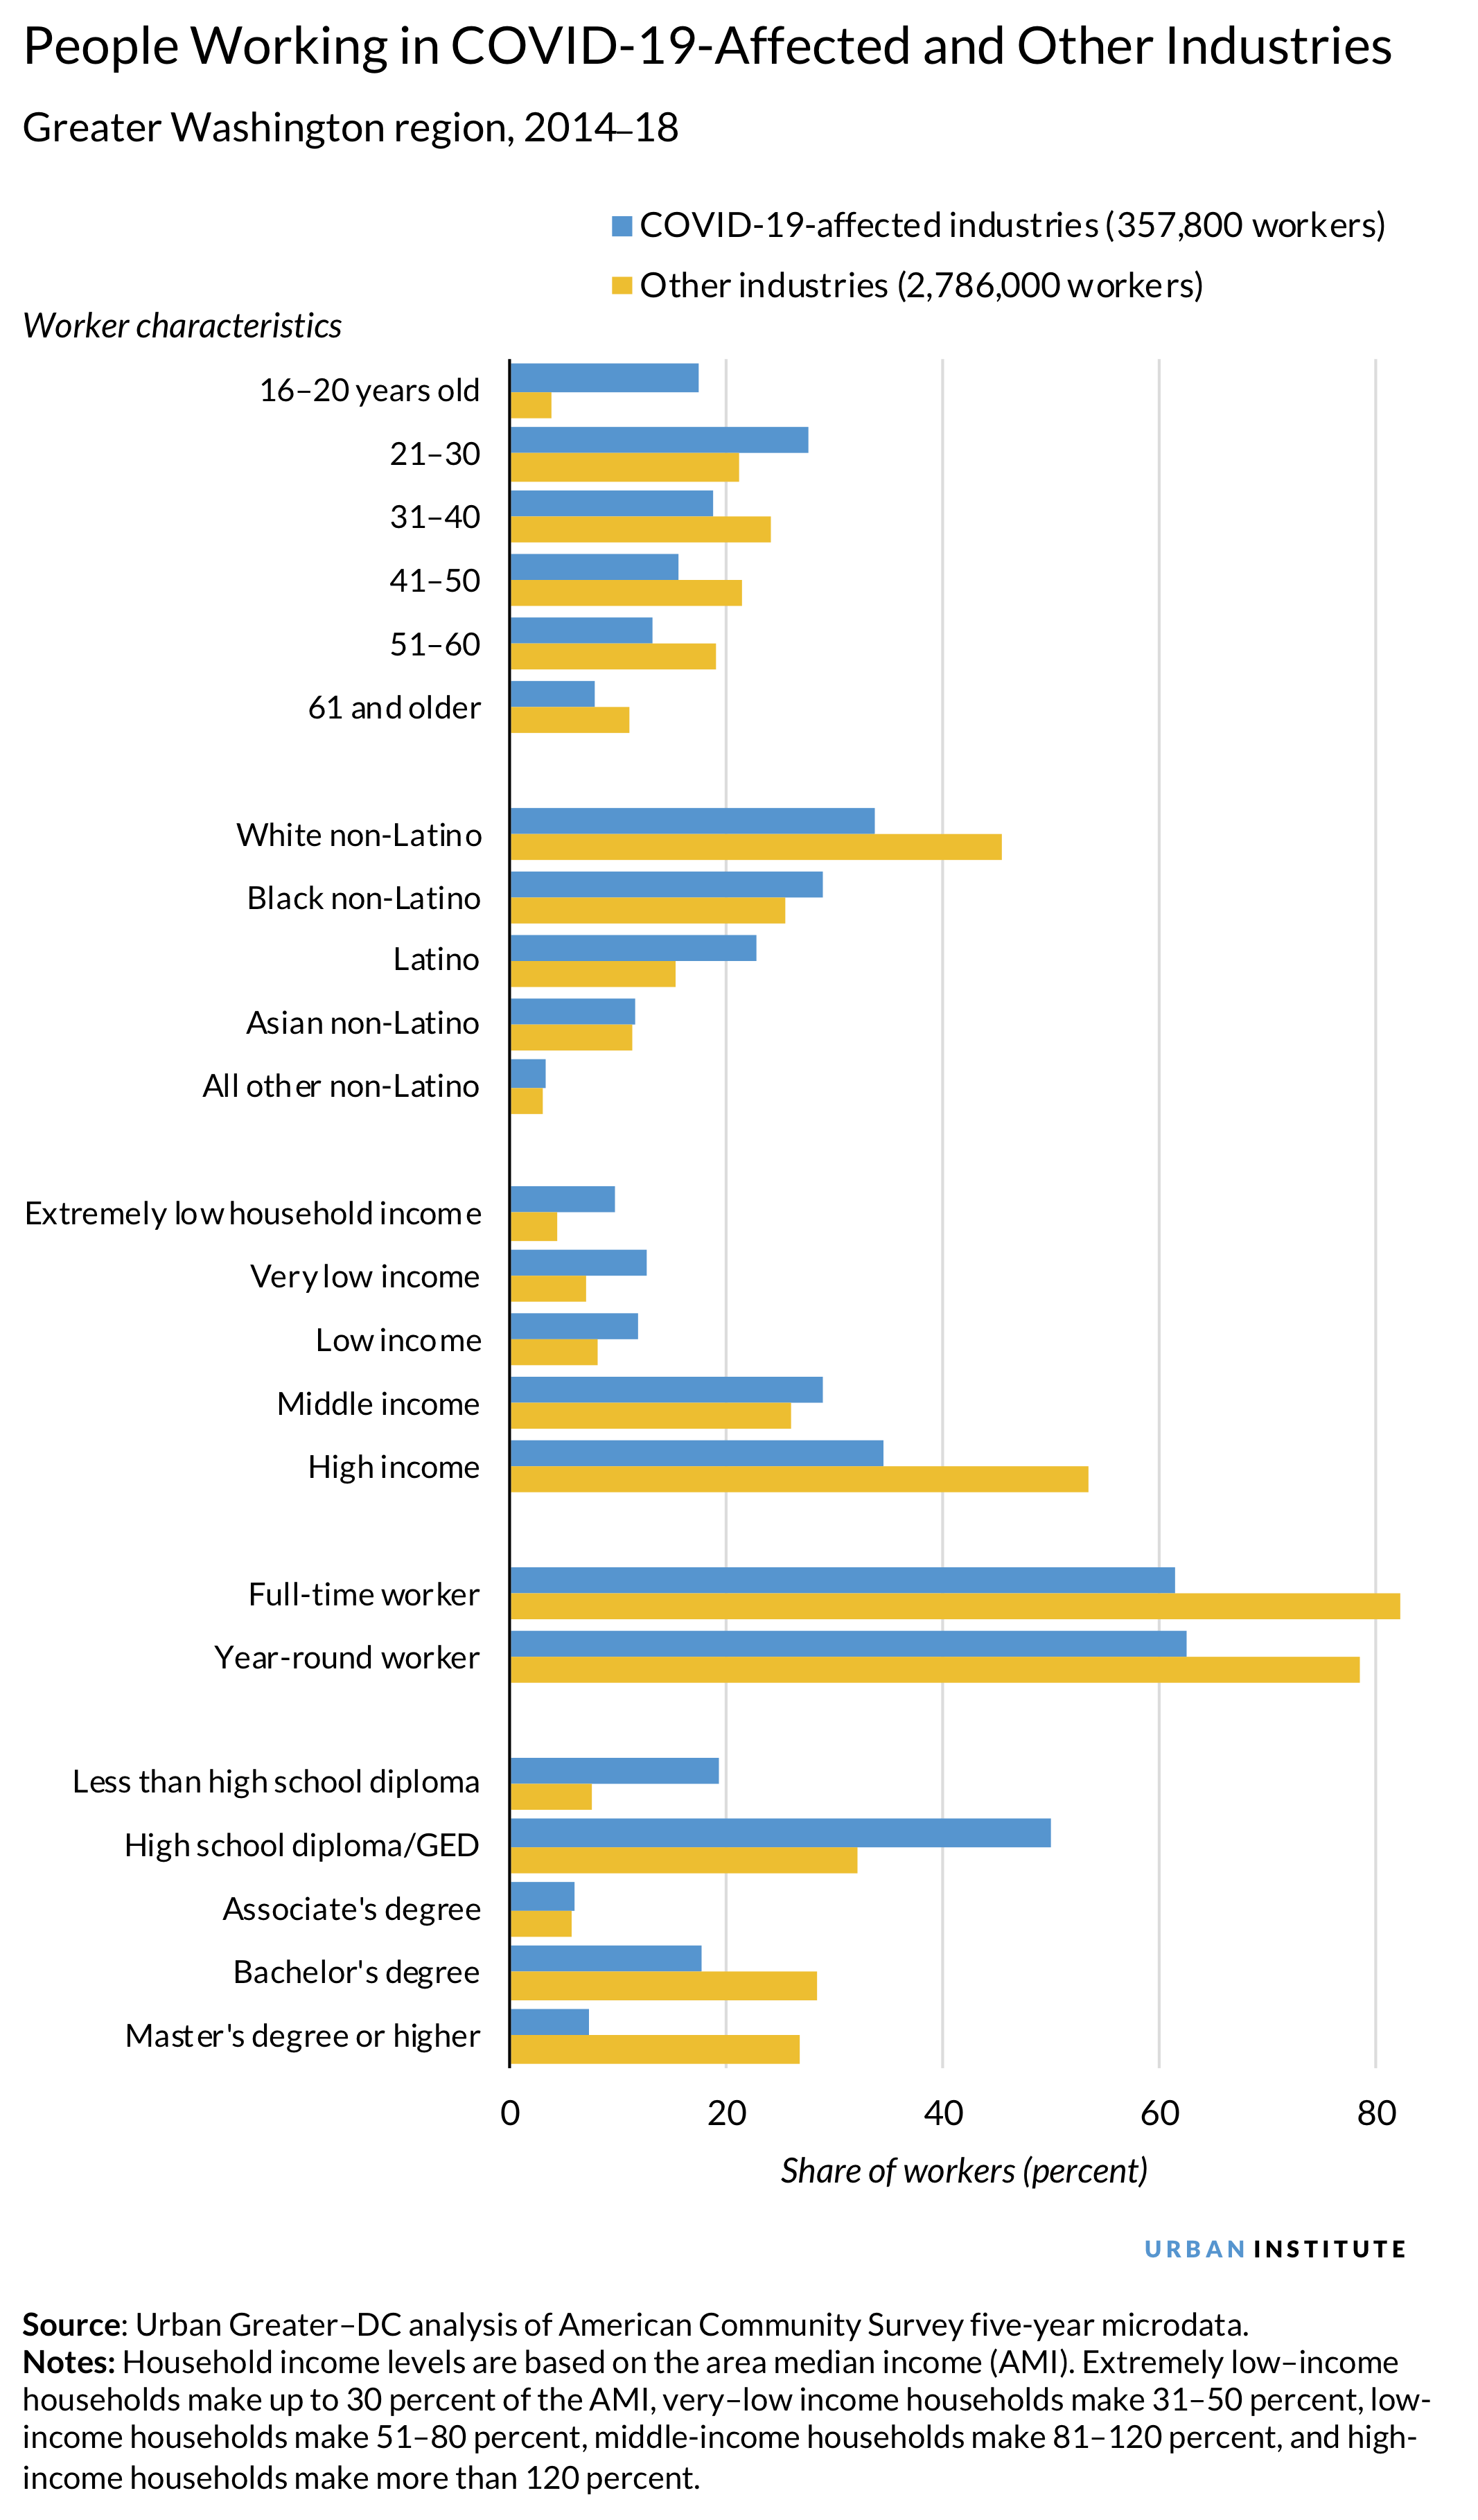 People Working in COVID-19-Affected and Other Industries graph